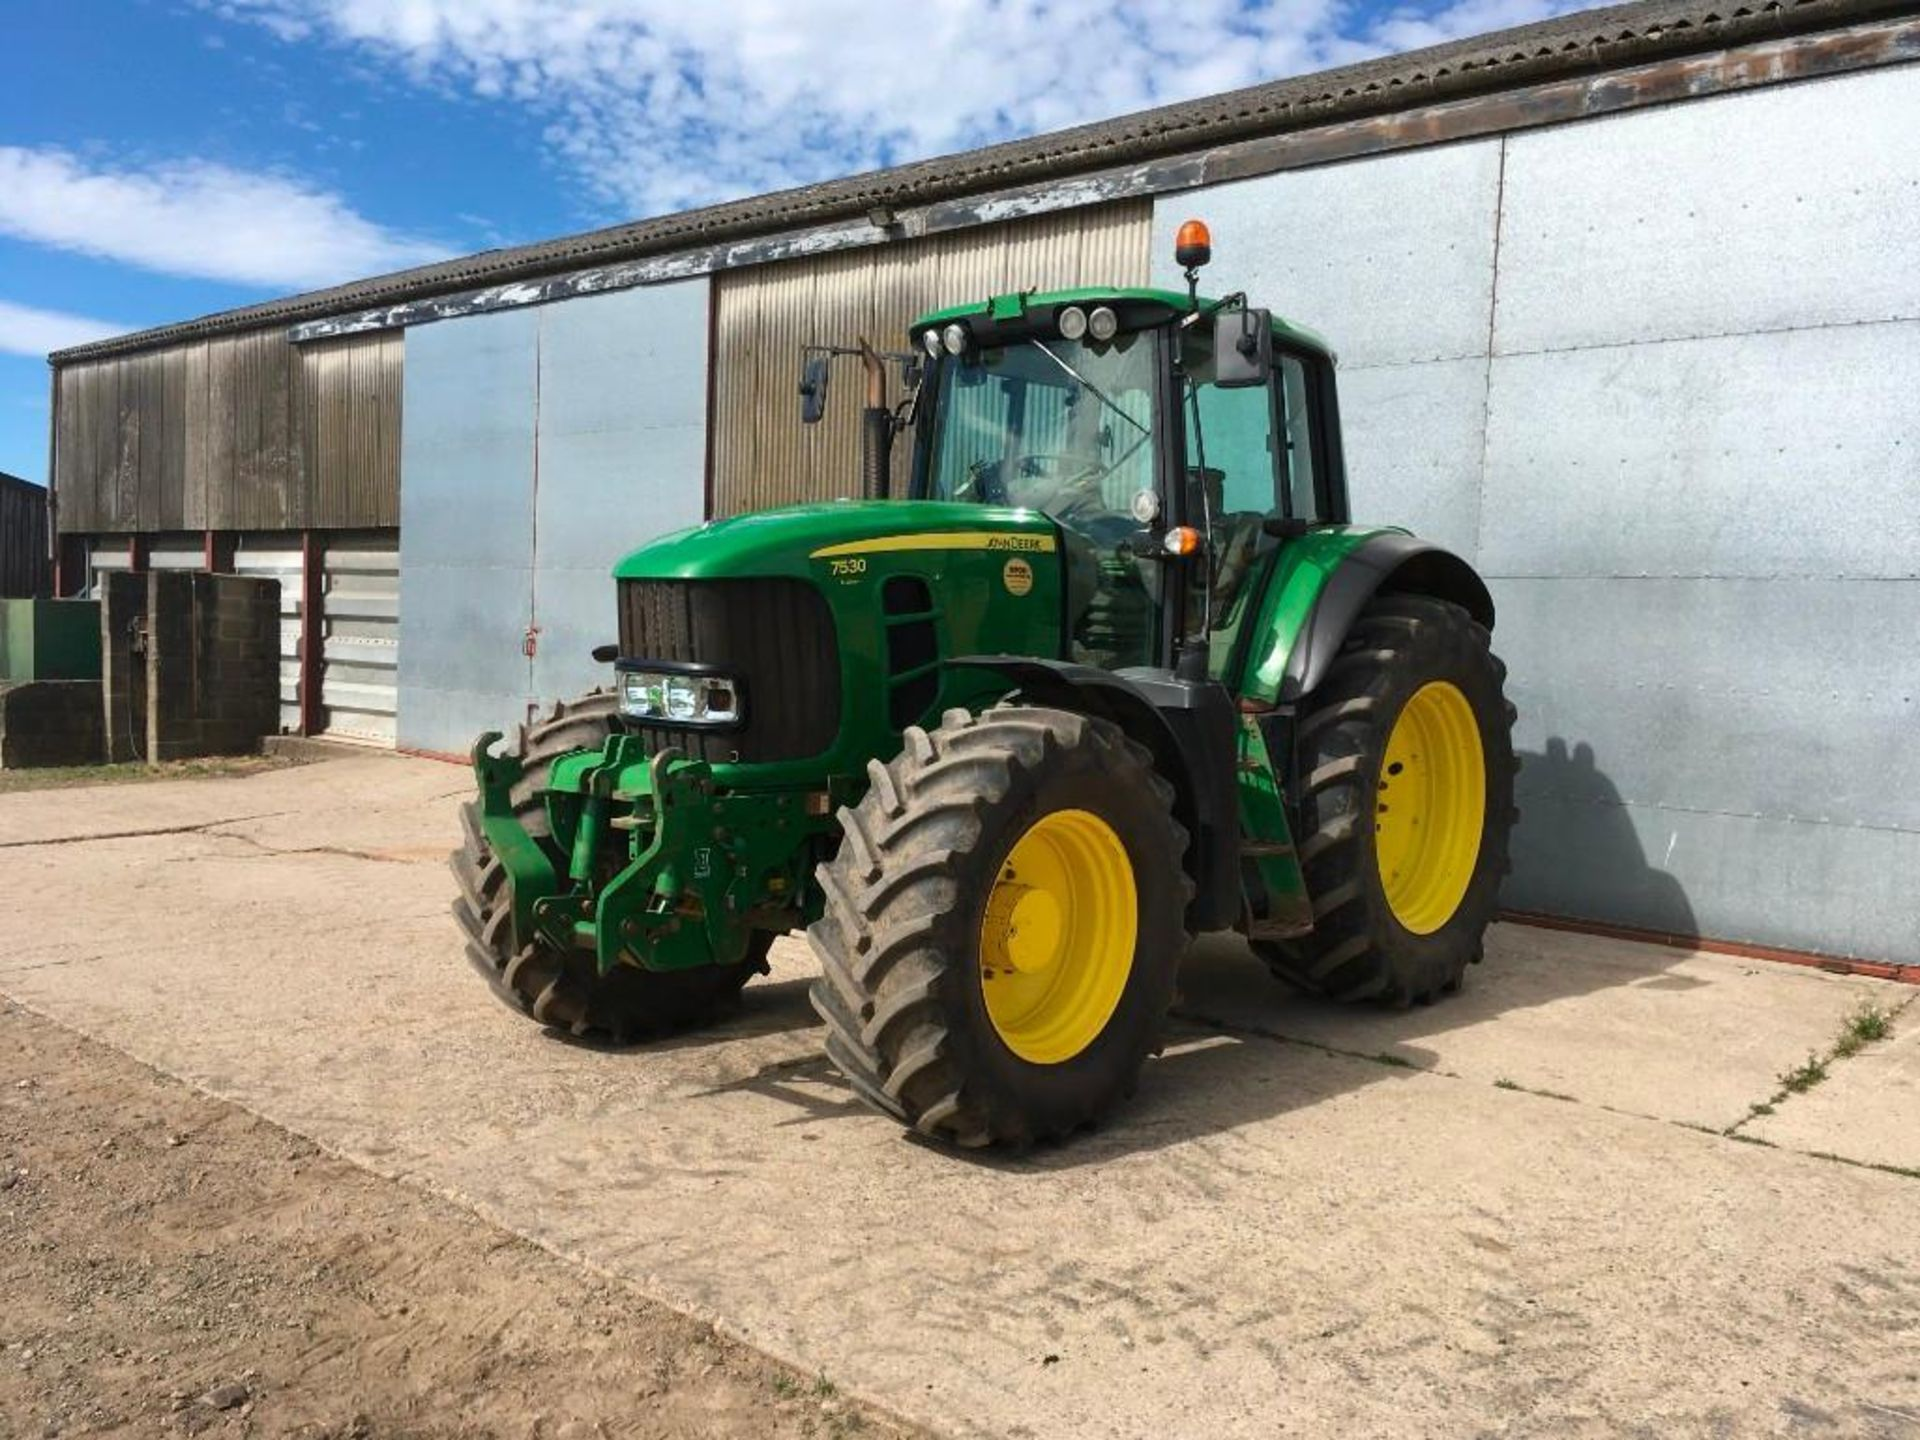 2008 John Deere 7530 tractor with auto quad gear box, 4 spool valves, pick up hitch, air seat, front - Image 3 of 14